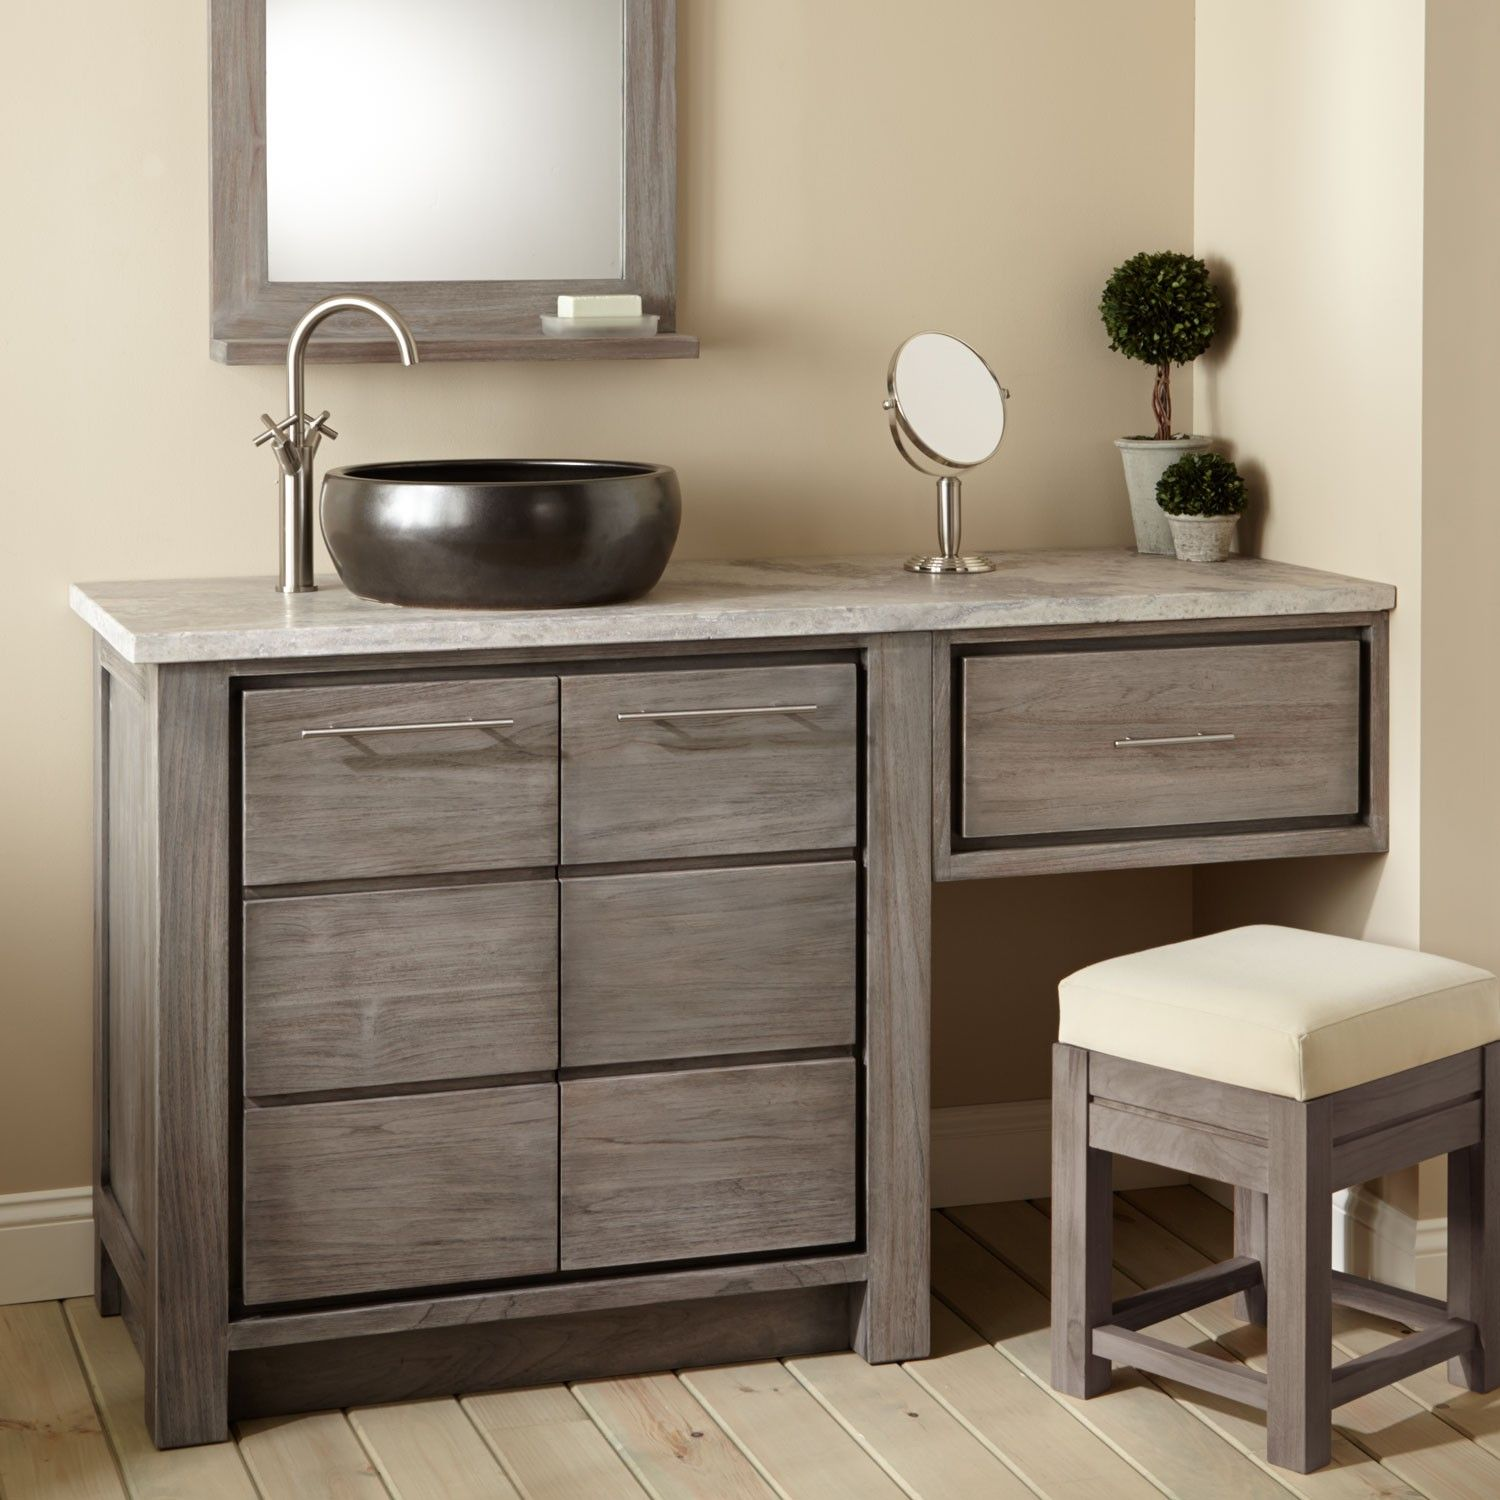 muhlen wall-mount sink | vessel sink vanity and grey wash